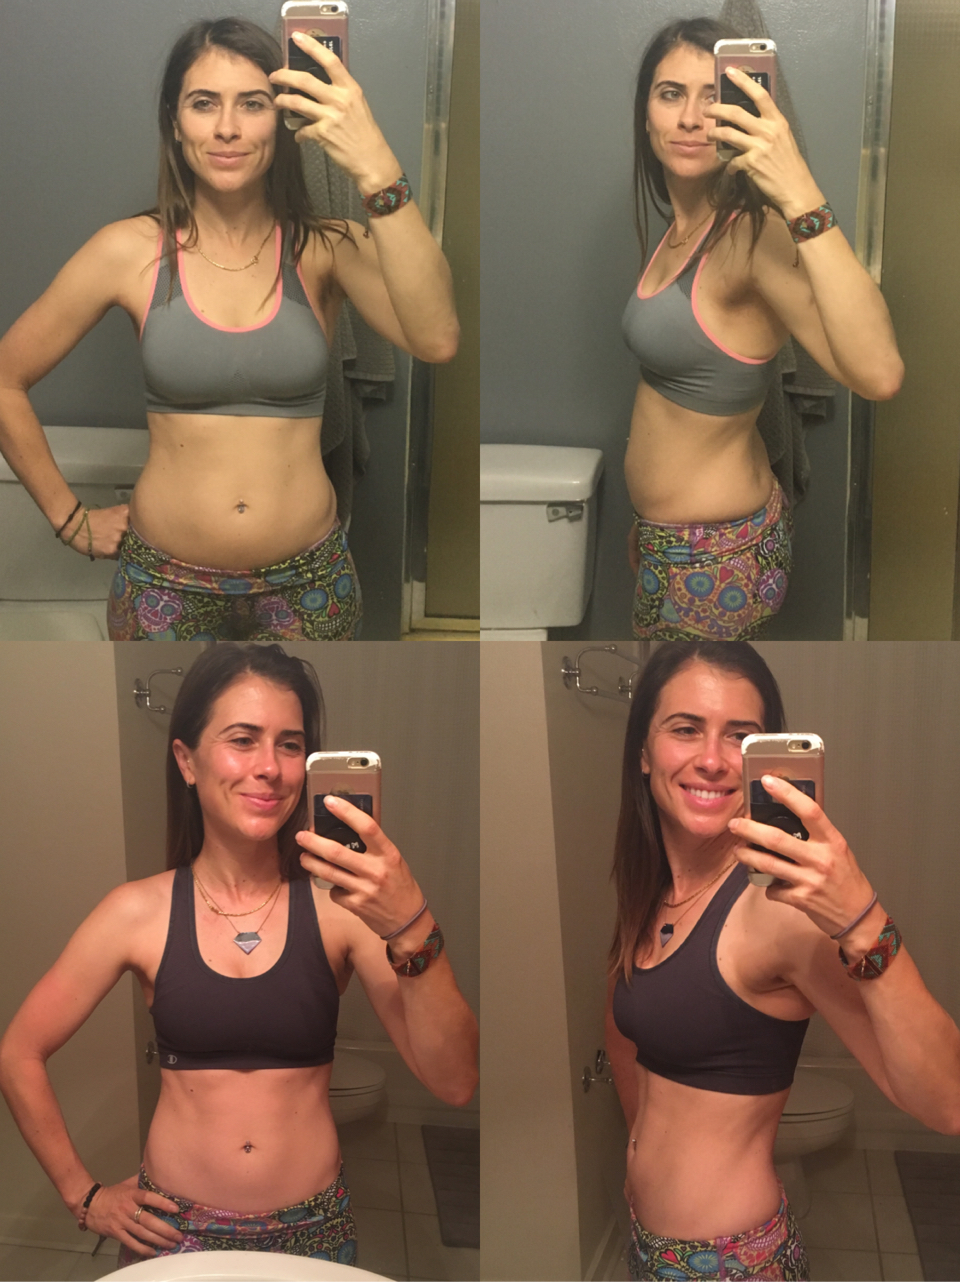 30 Day Results... - 3 pounds lost. A 1-2